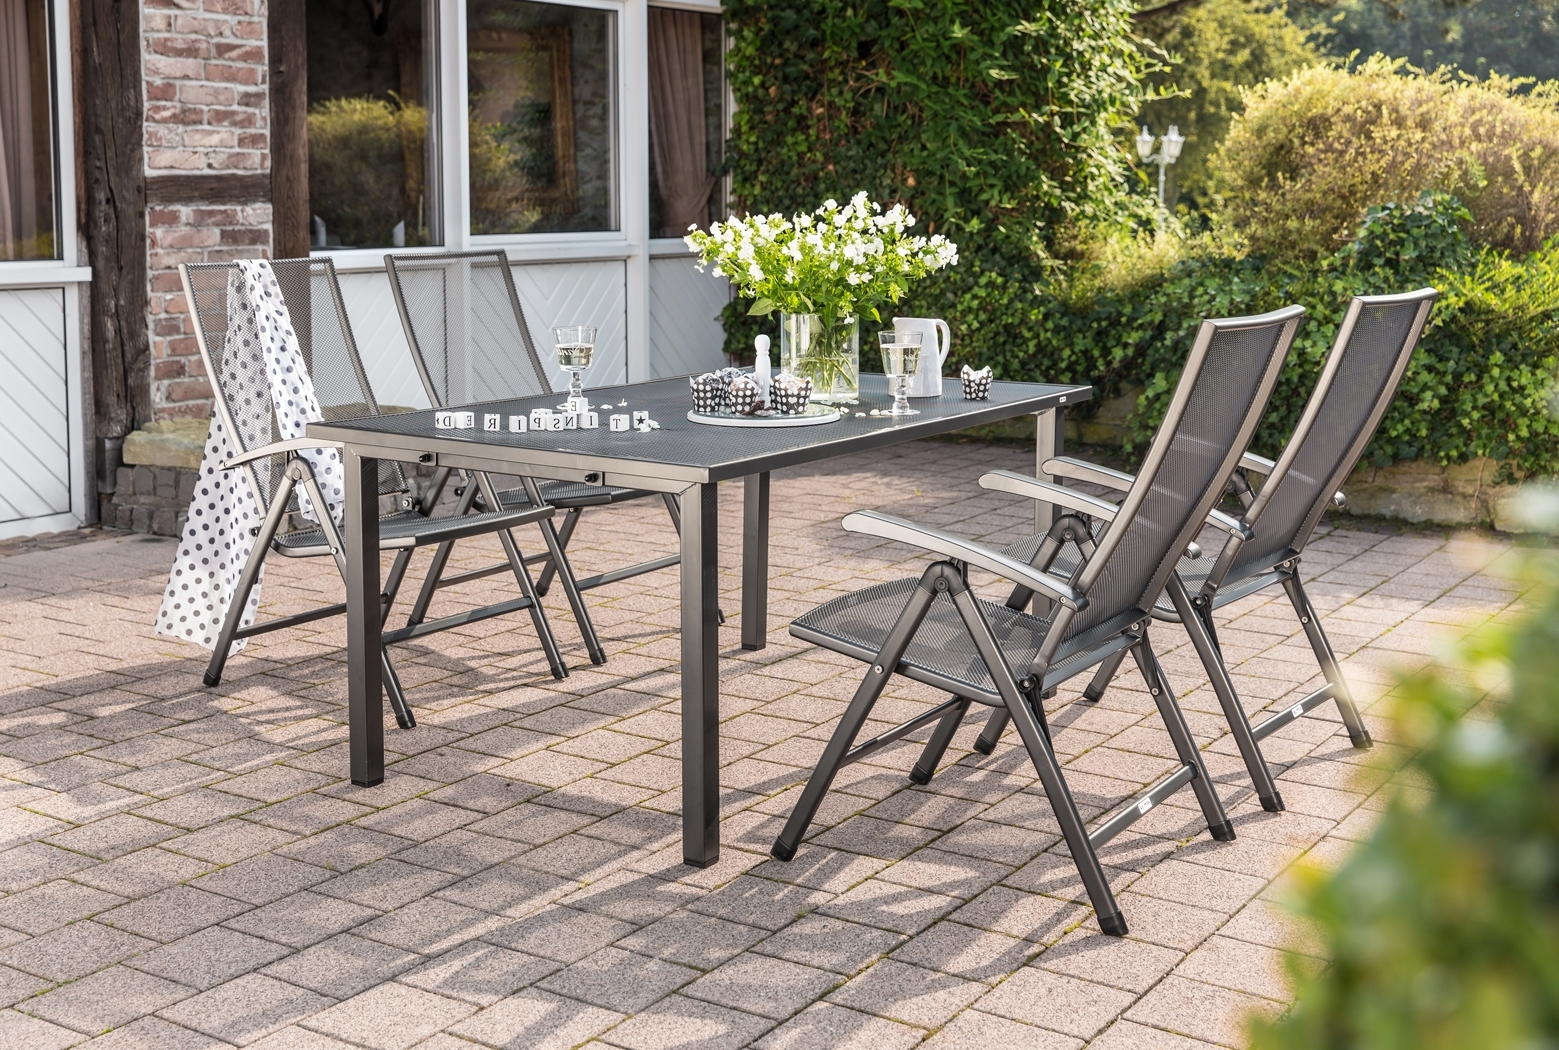 Table Tennis, Tricycles, Toys, Patio Furniture & Fitness Pertaining To Kettler Patio Umbrellas (View 6 of 20)